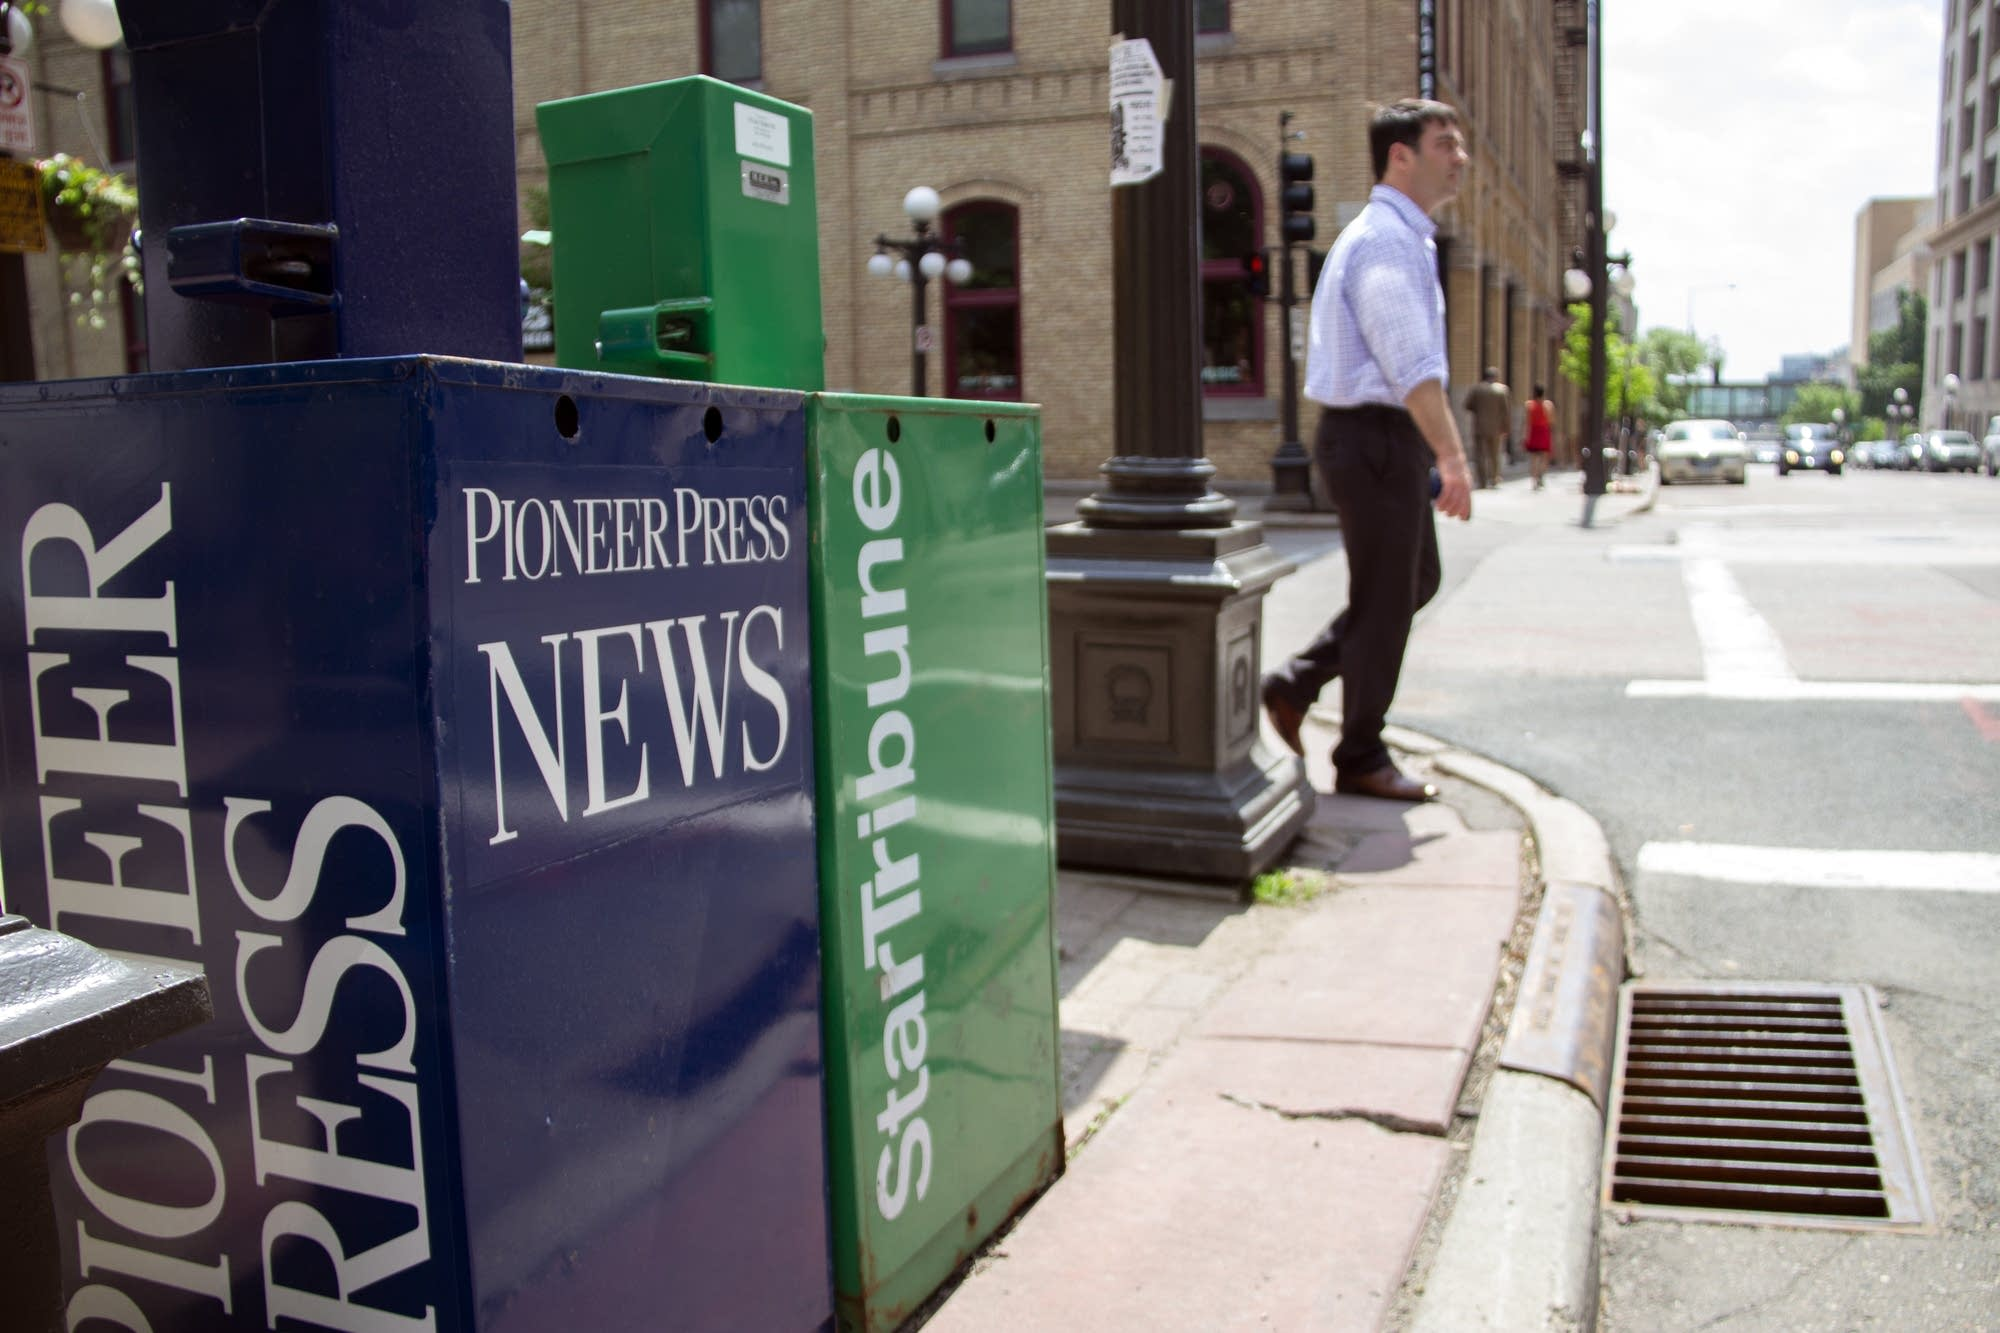 Newspaper boxes sit on a corner in Mears Park in St. Paul.